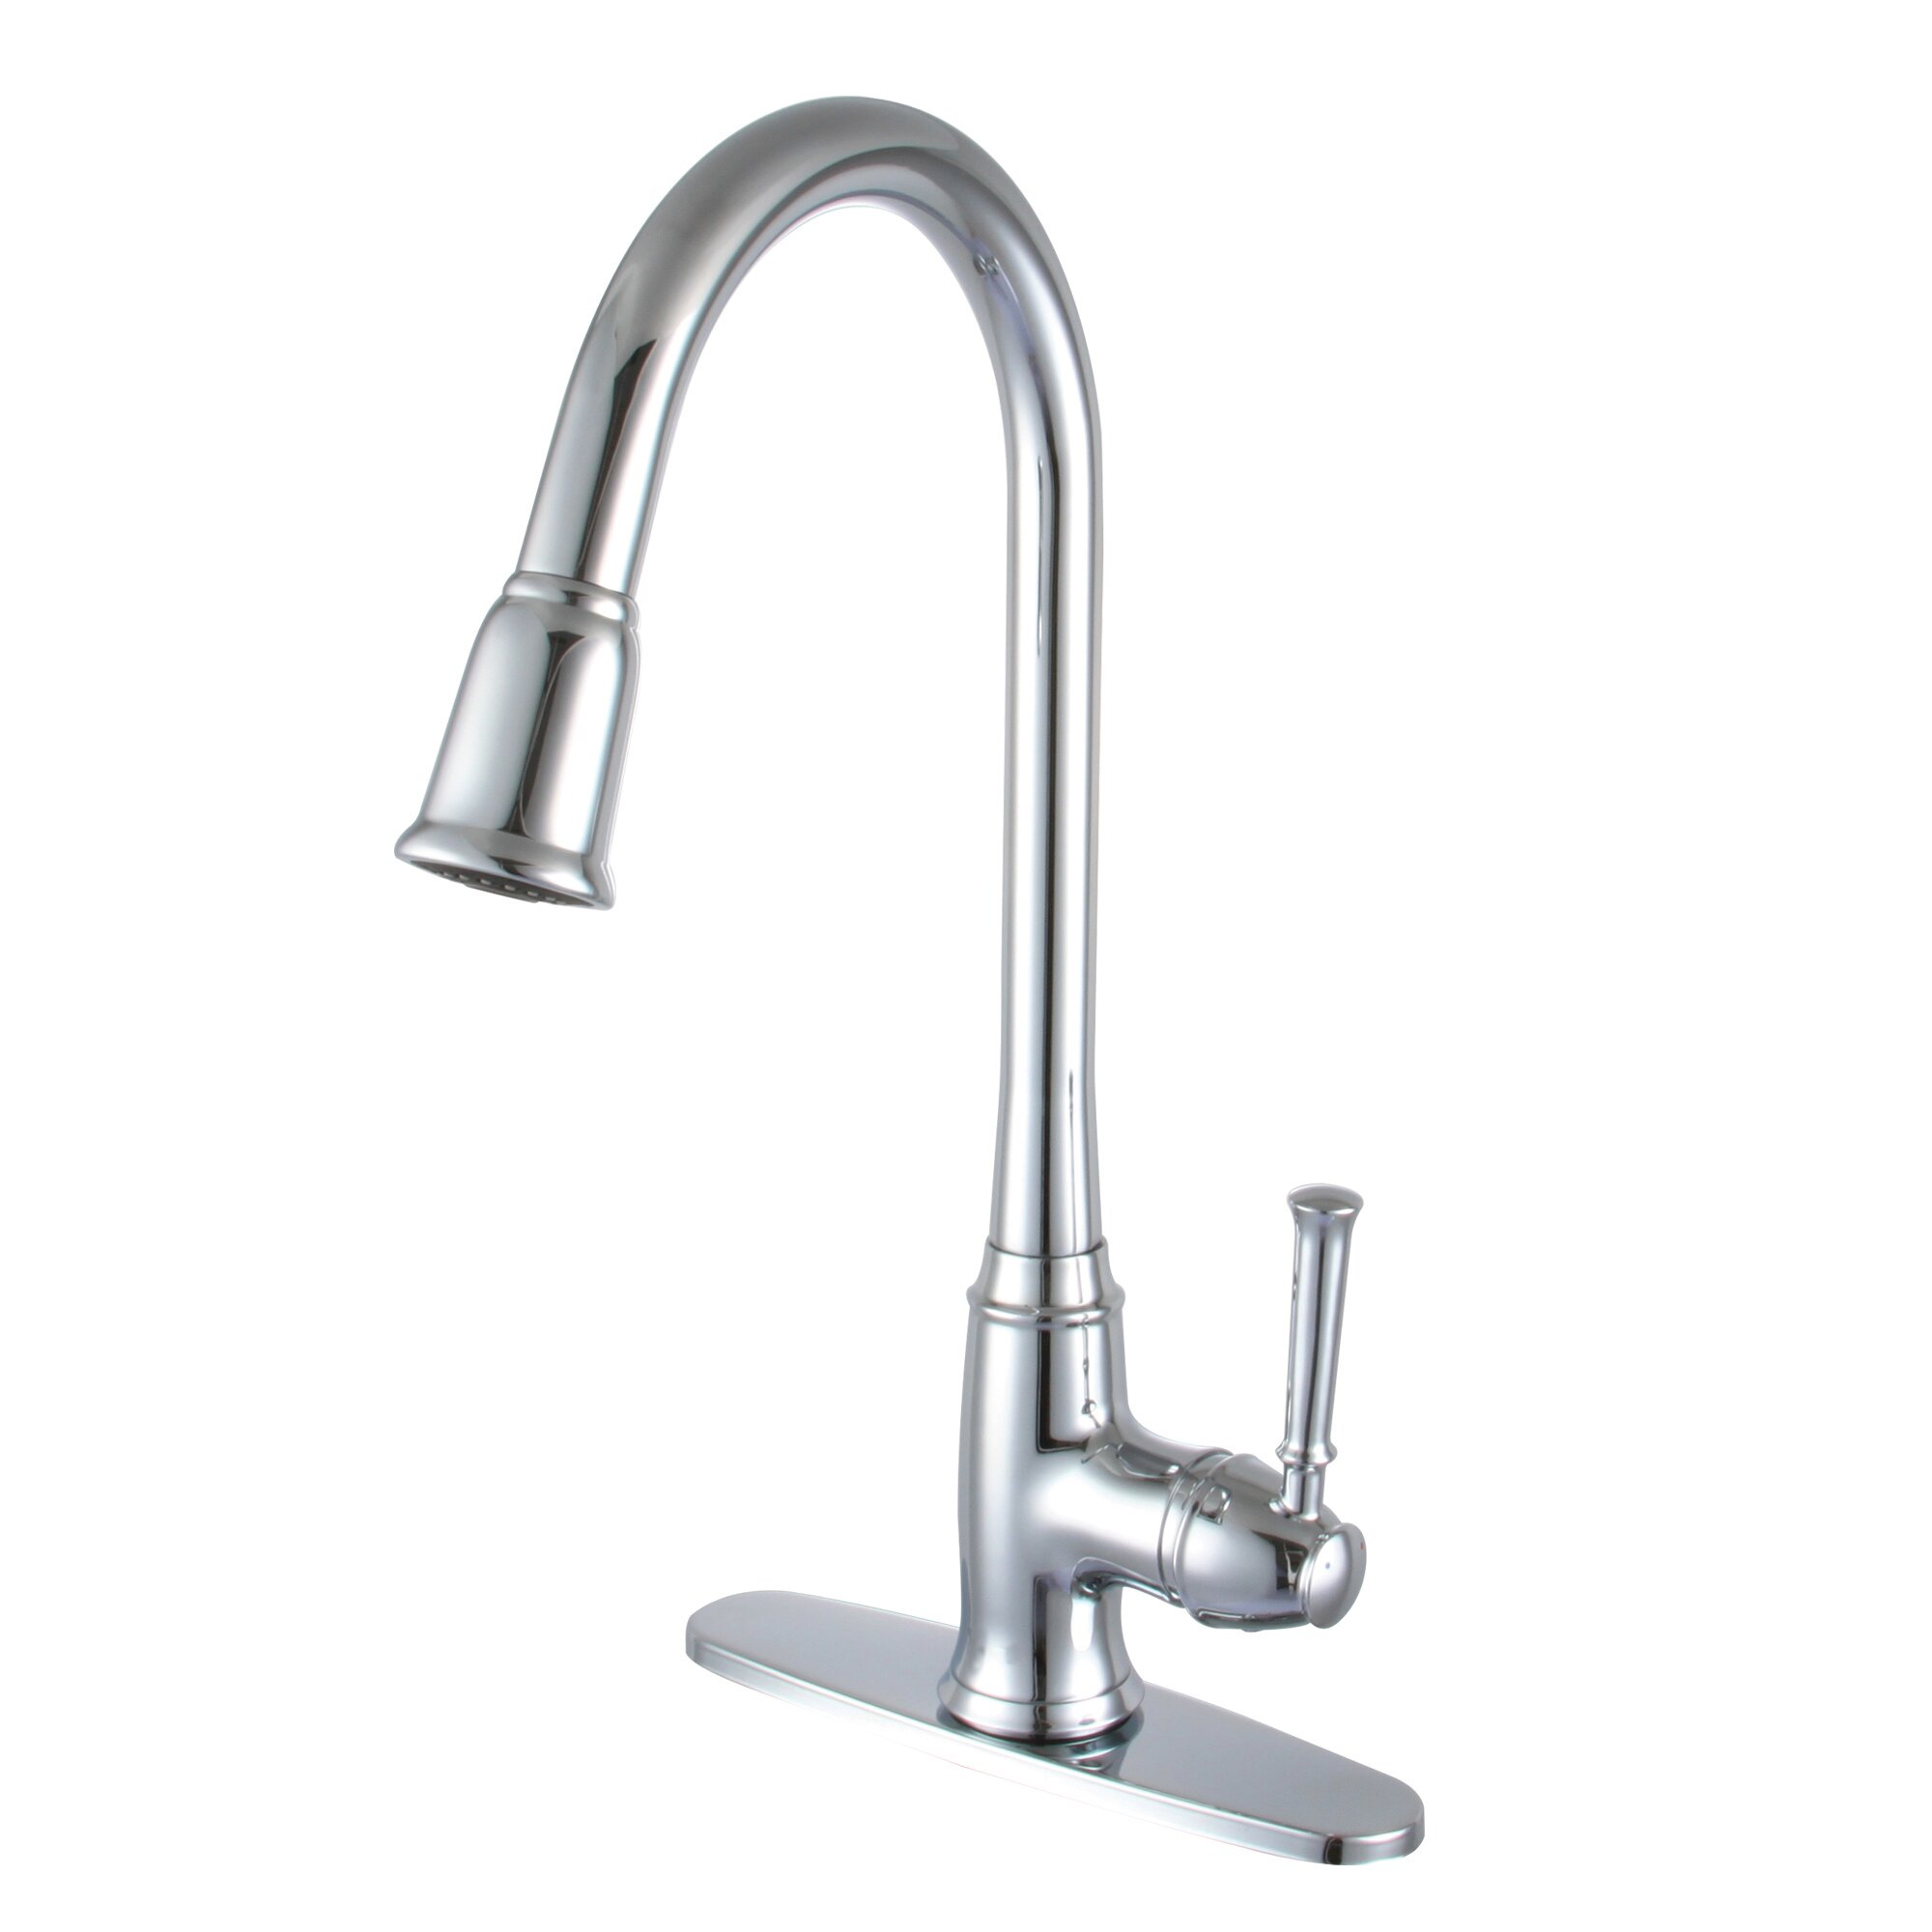 Yosemite Home Decor Single Handle Deck Kitchen Faucet Reviews Wayfair